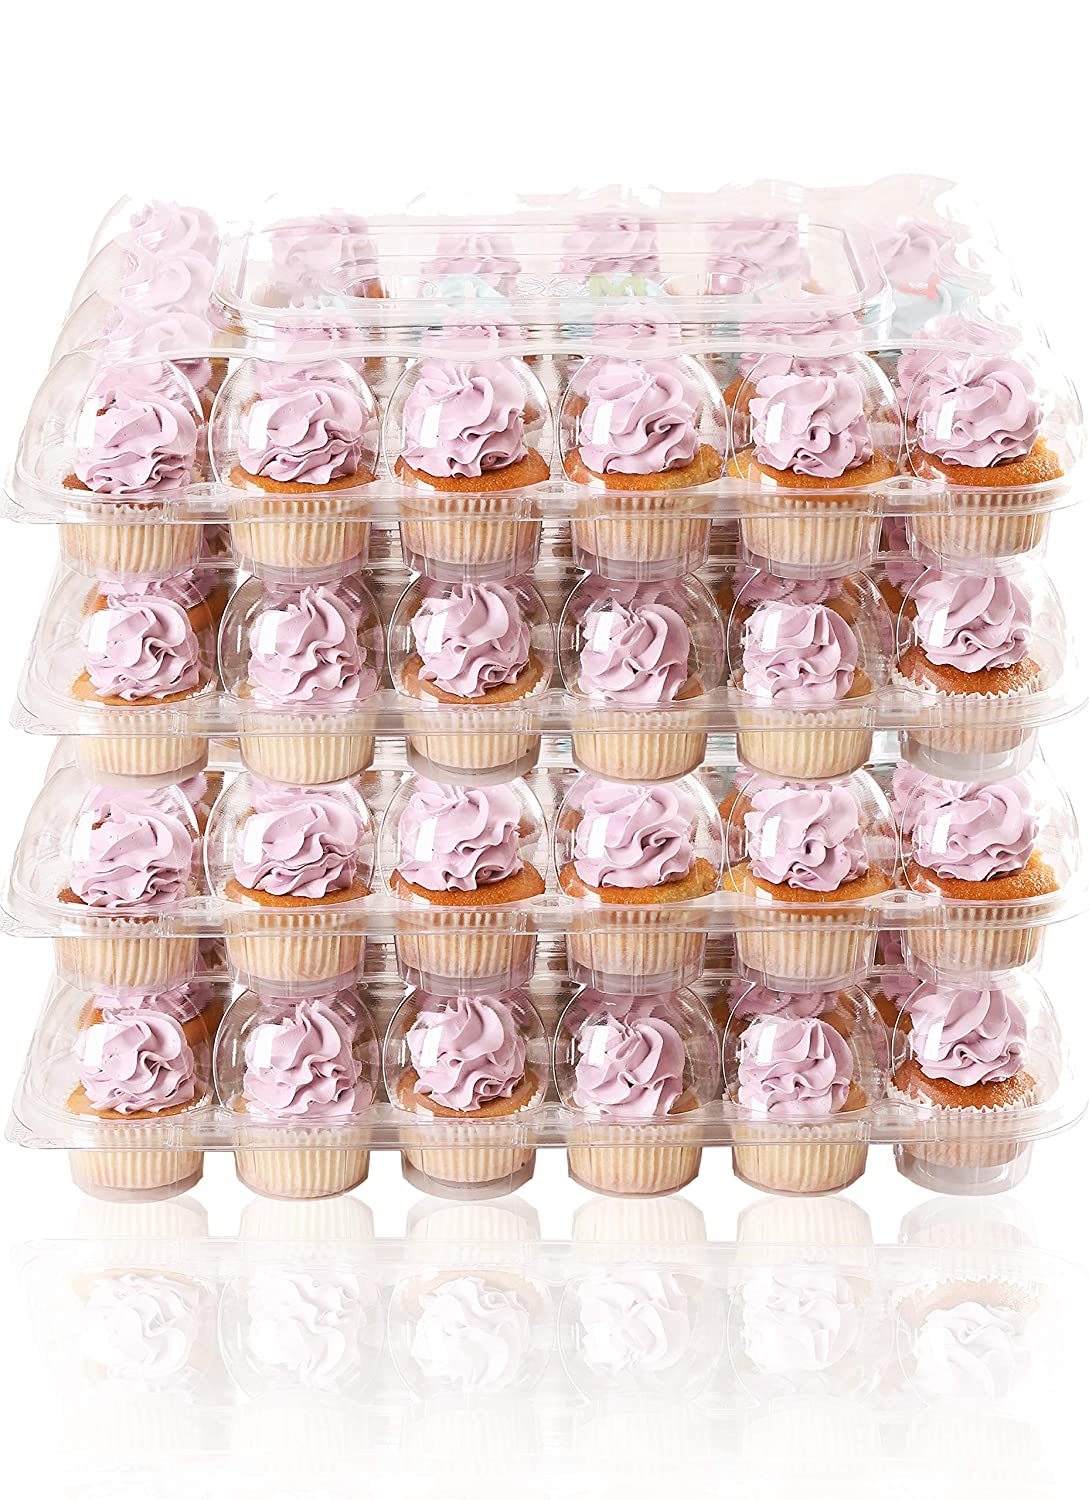 (24 Pack x 4 Sets) STACKnGO Carrier Holds 24 Standard Cupcakes - Strongest Cupcake Boxes, Tall Dome Detachable Lid, Clear Plastic Disposable Containers, Storage Tray, Travel Holder, Regular Muffins 91Gu0e5WekL